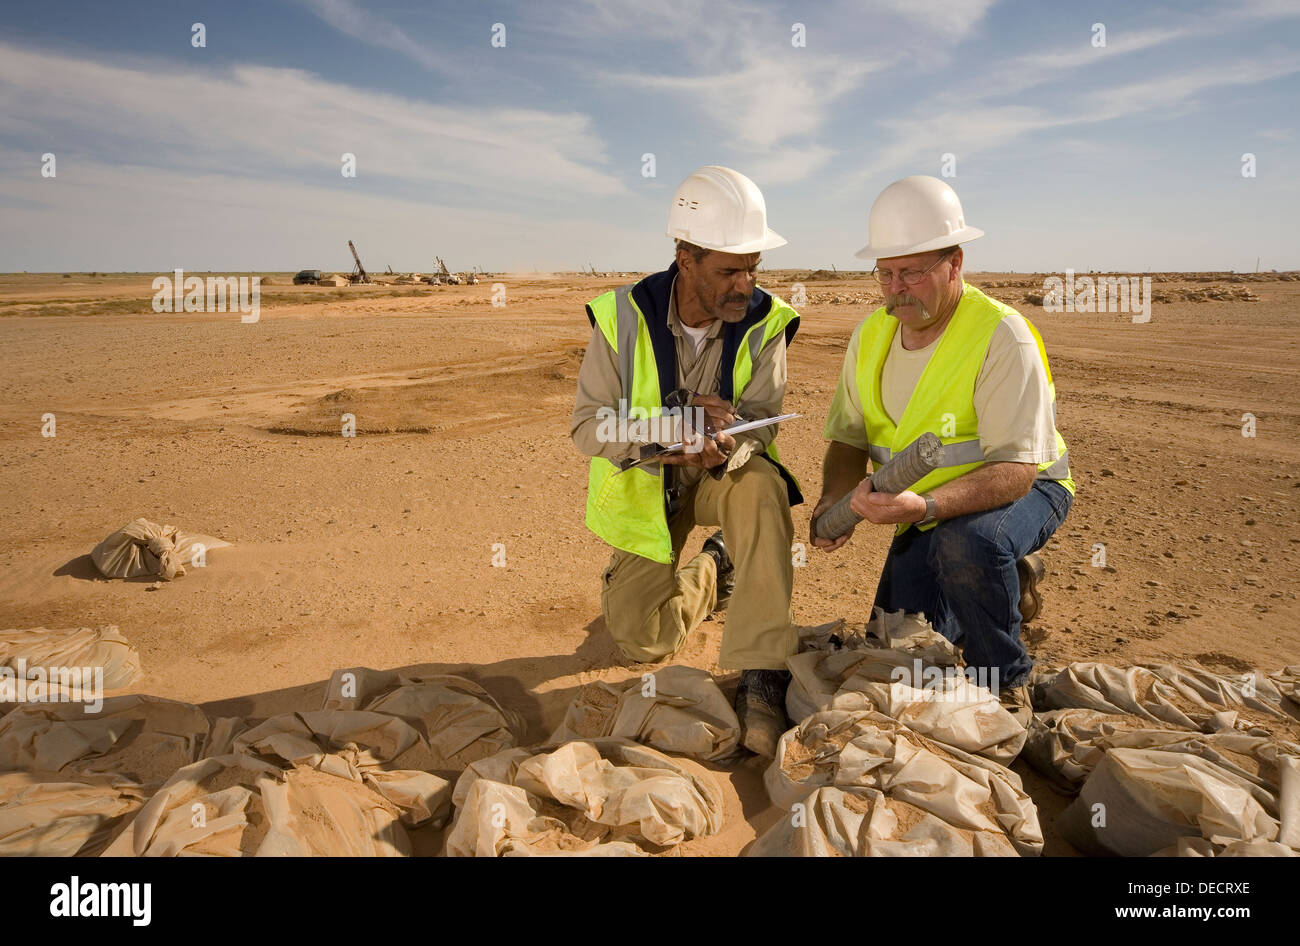 Geologists on surface gold mine examining core and grade samples from exploration drill rigs seen behind, Mauritania, NW Africa - Stock Image